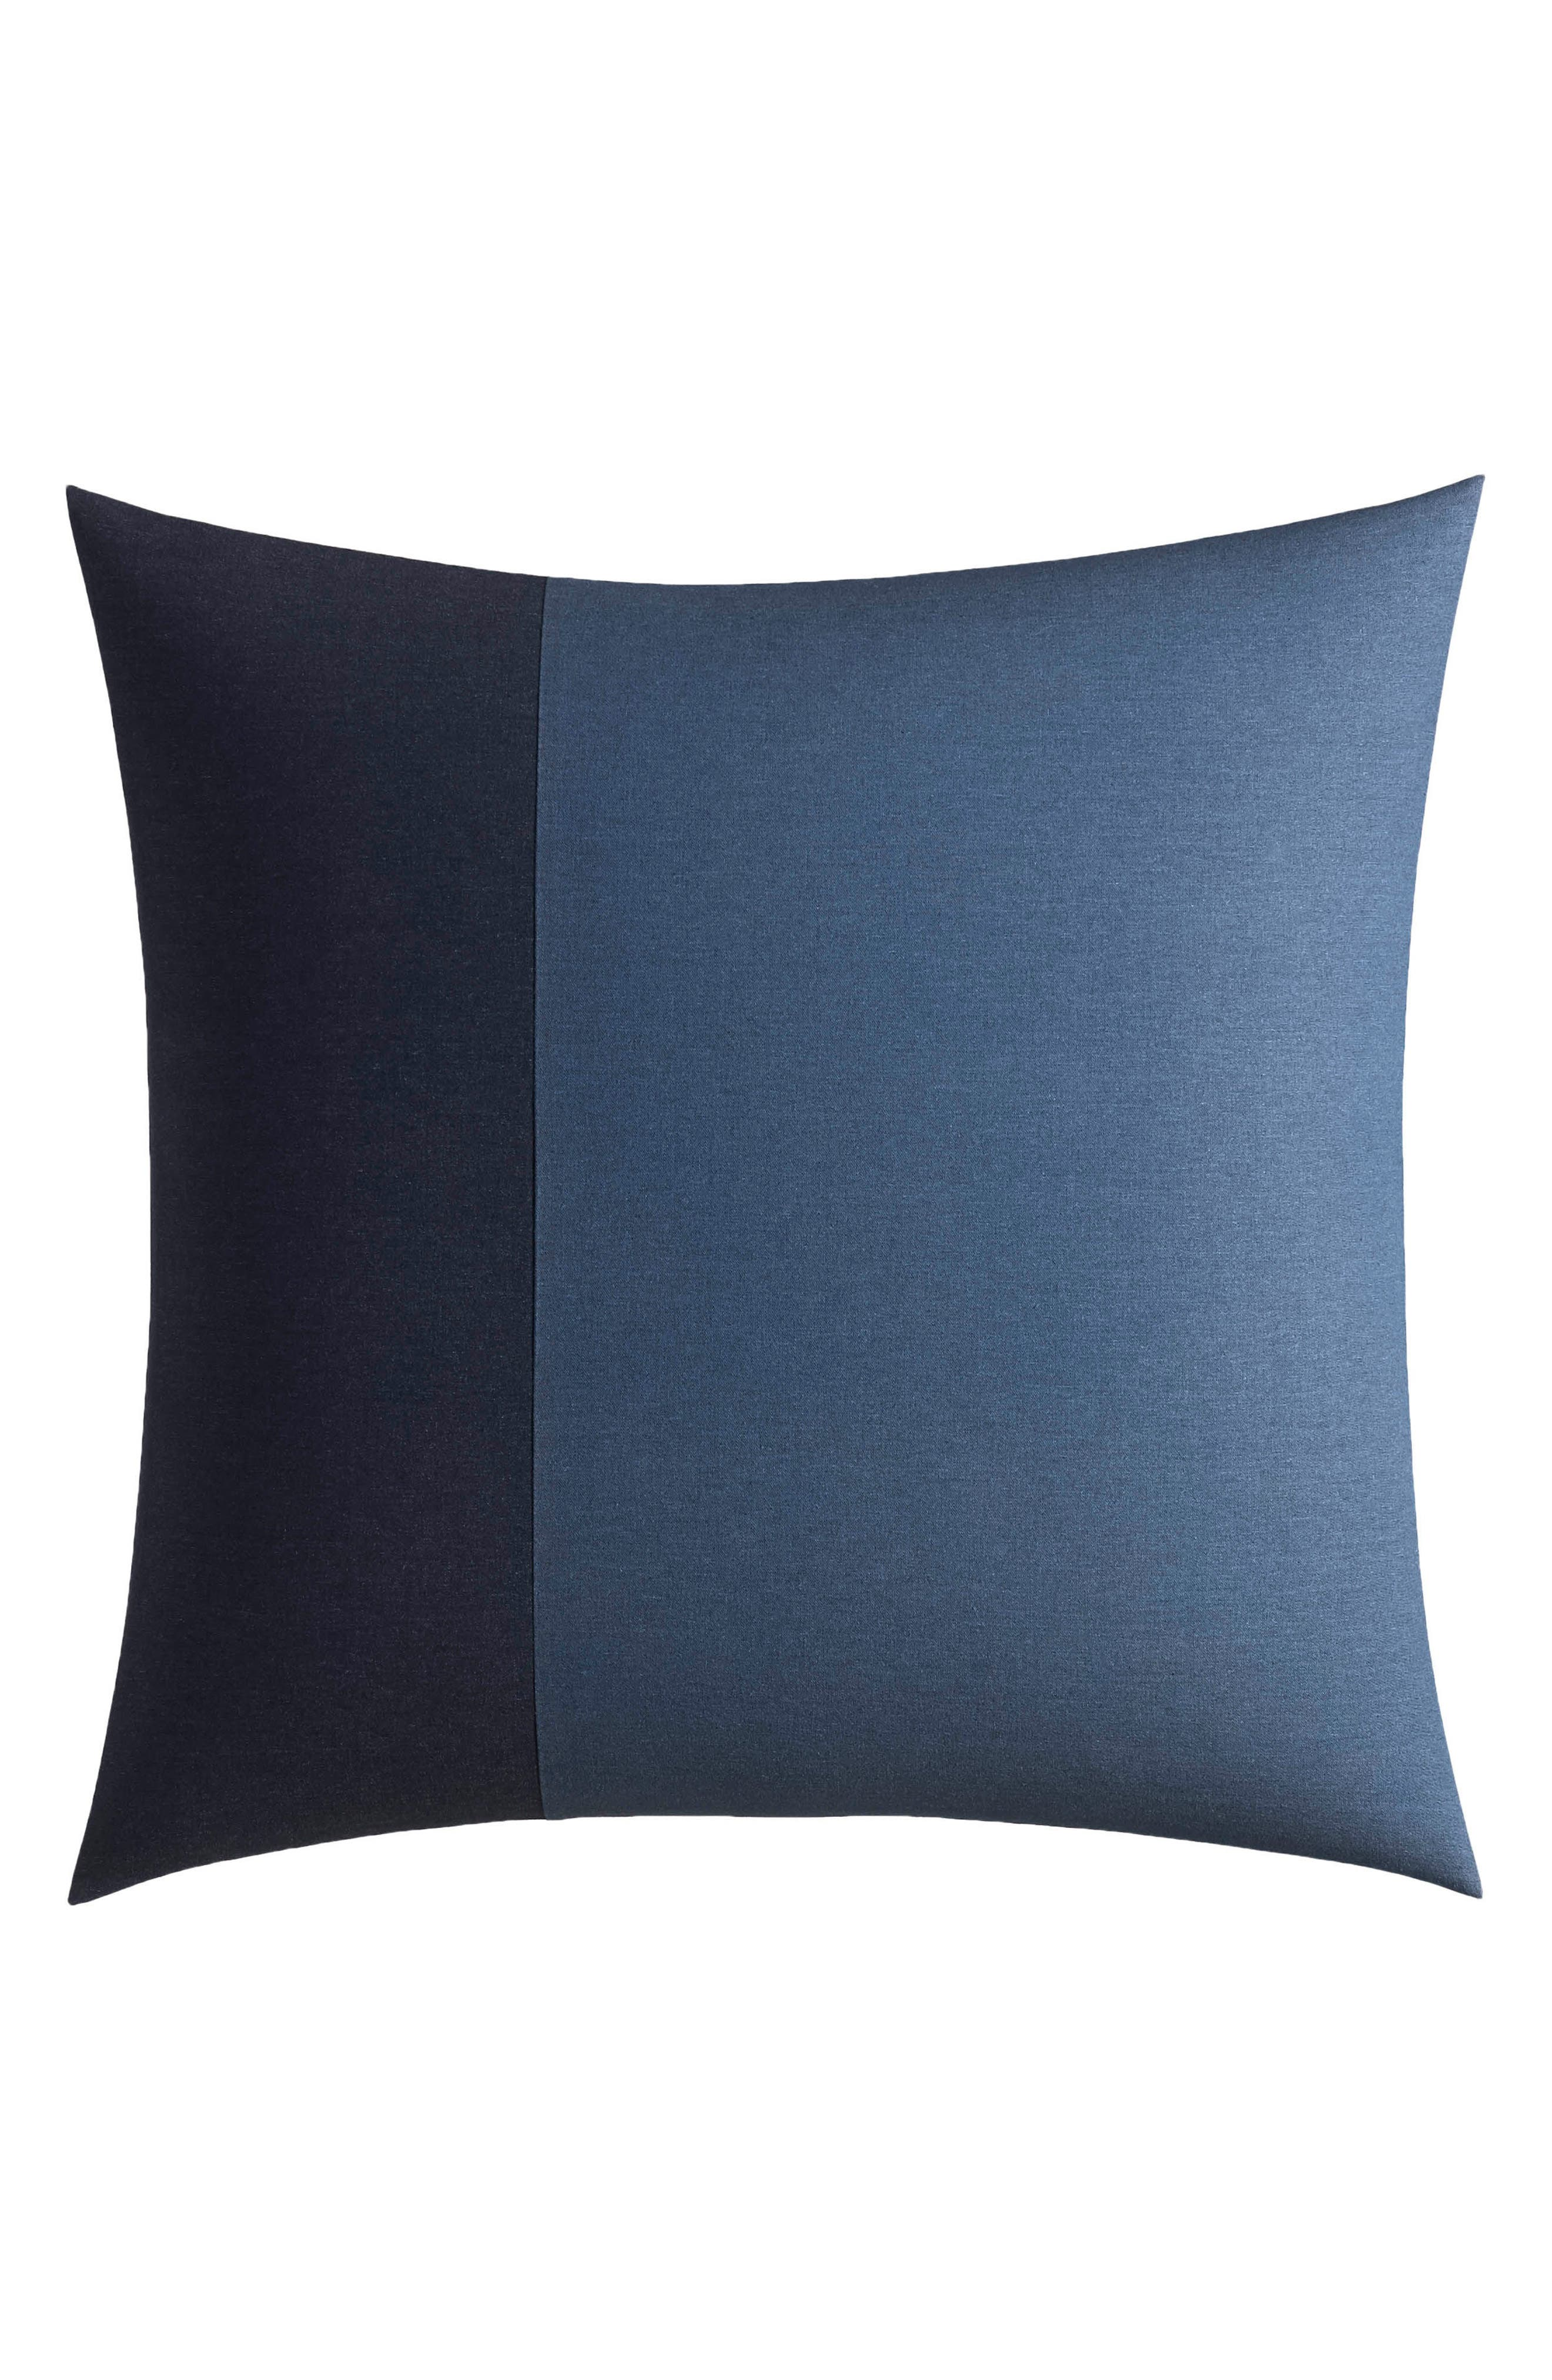 Lockridge Euro Sham,                         Main,                         color, DARK BLUE